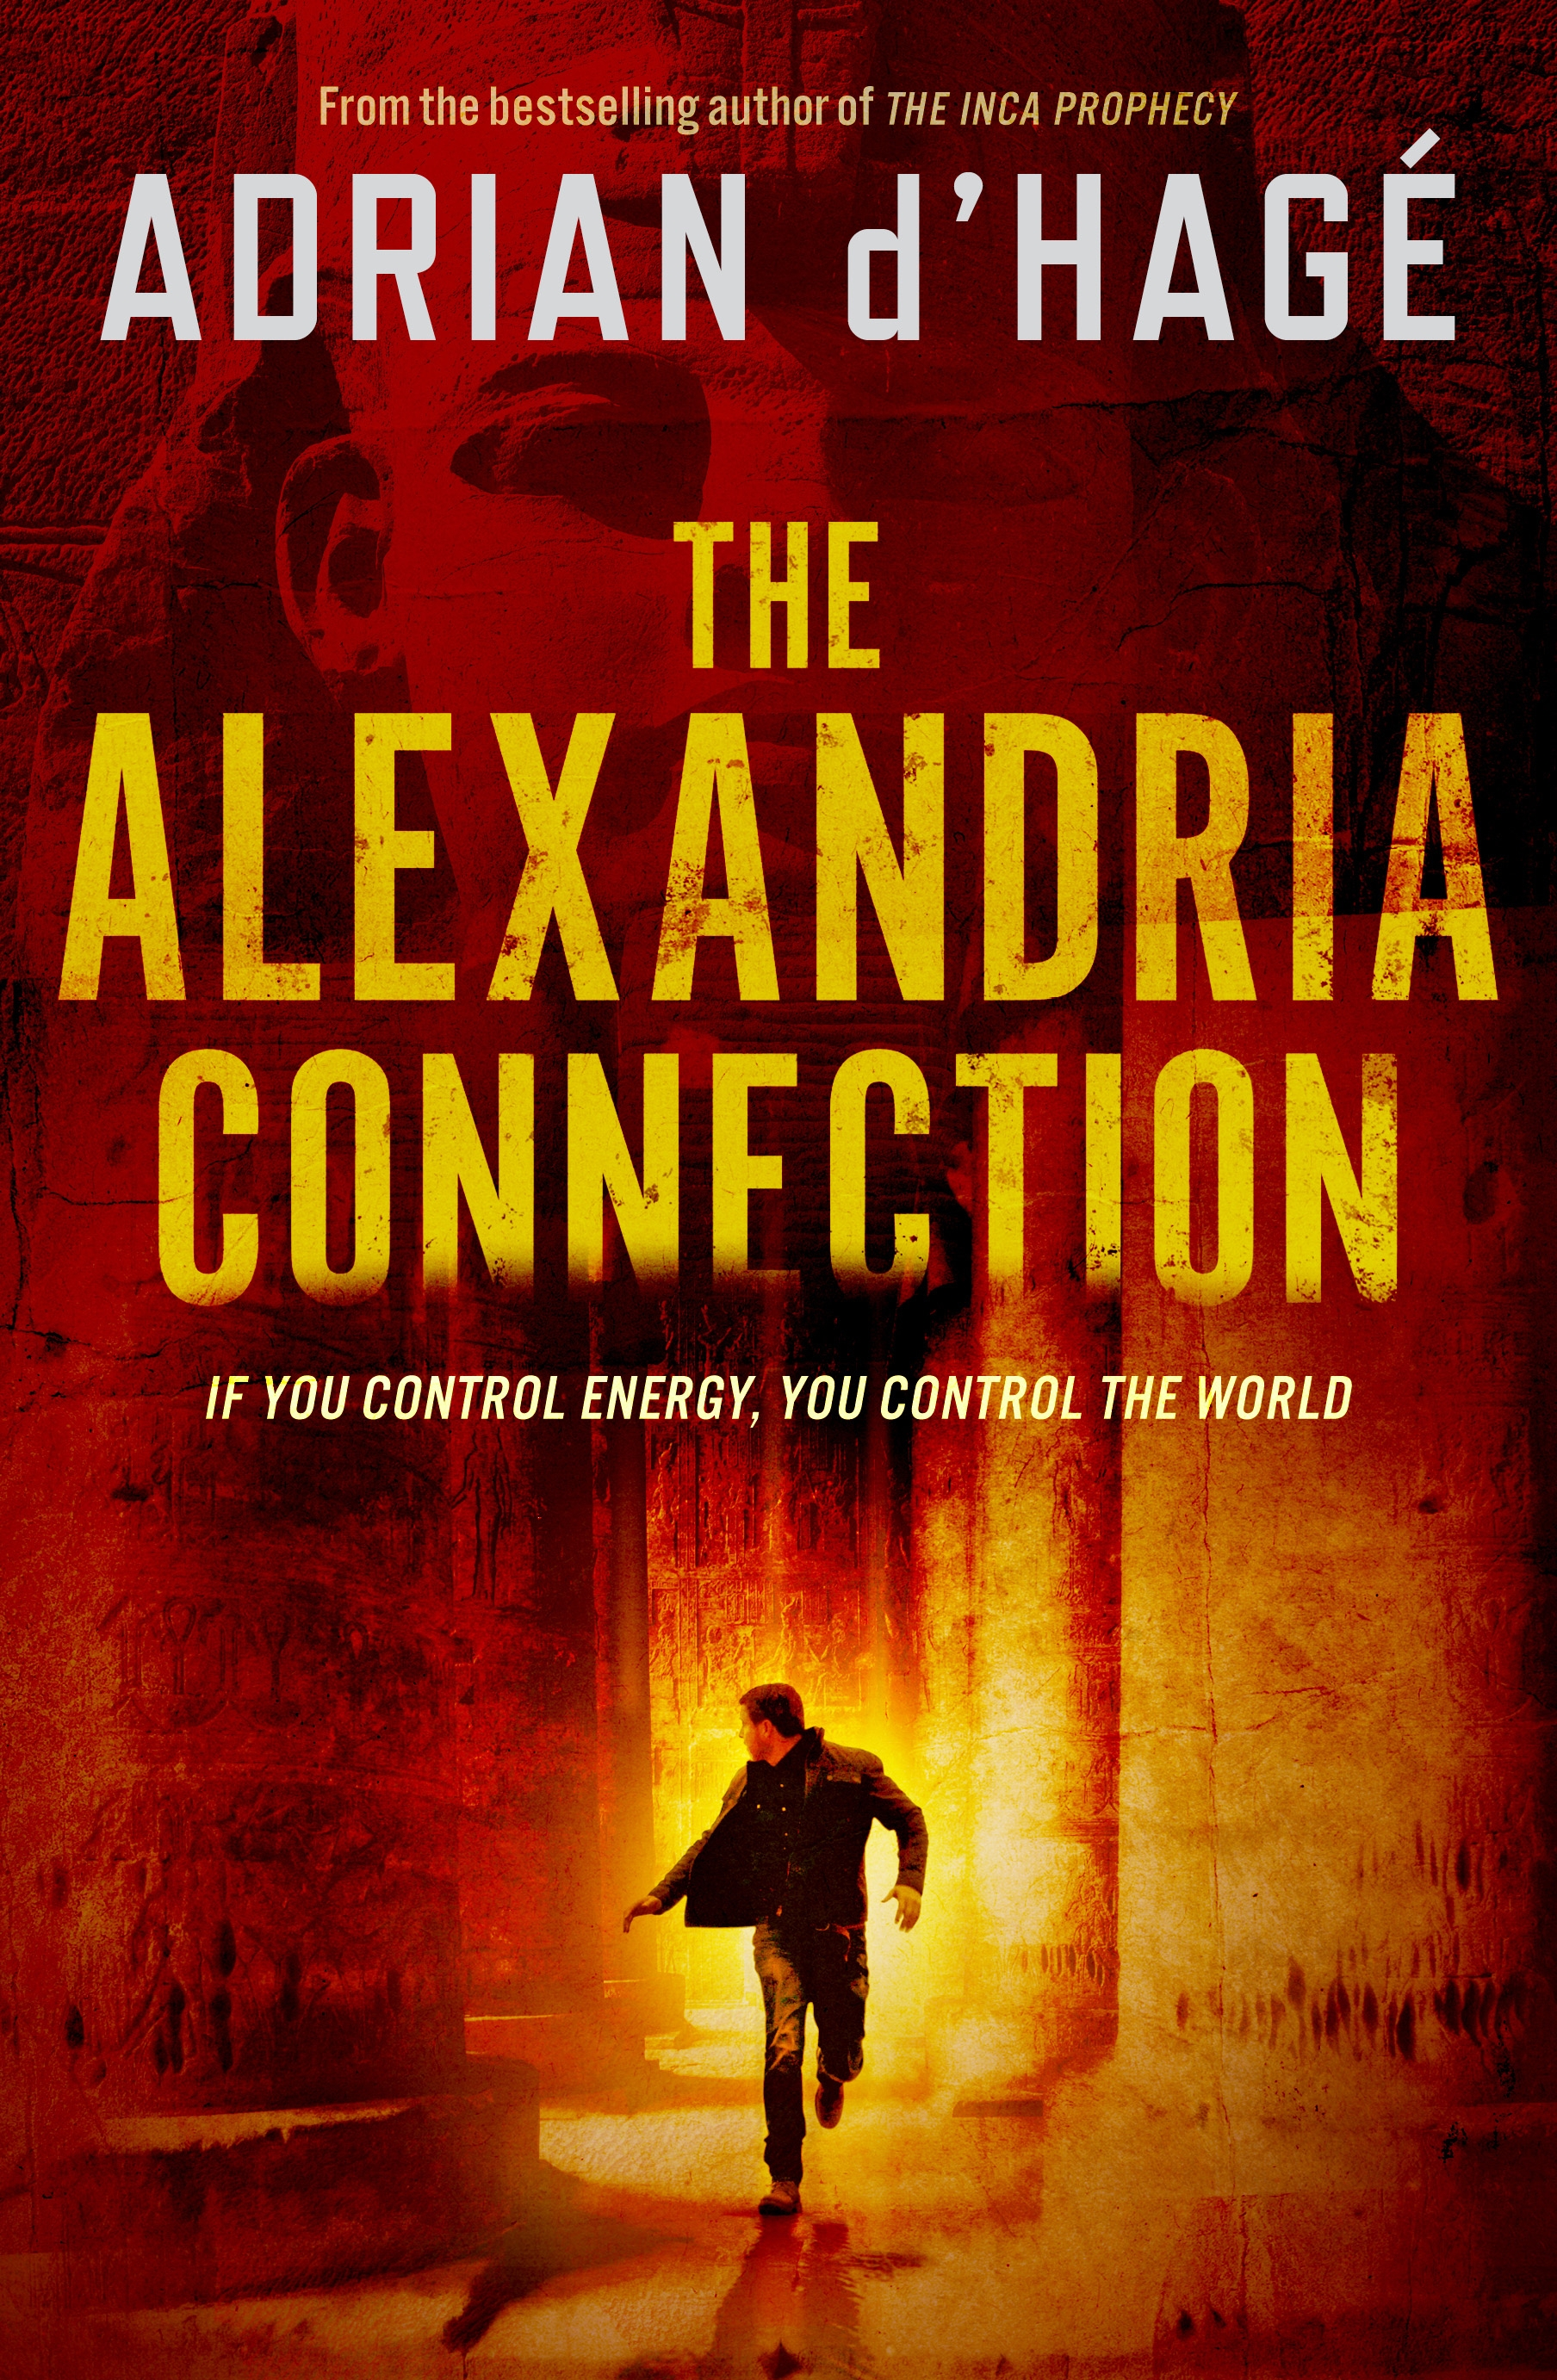 Alexandria Connection by Adrian d'Hagé